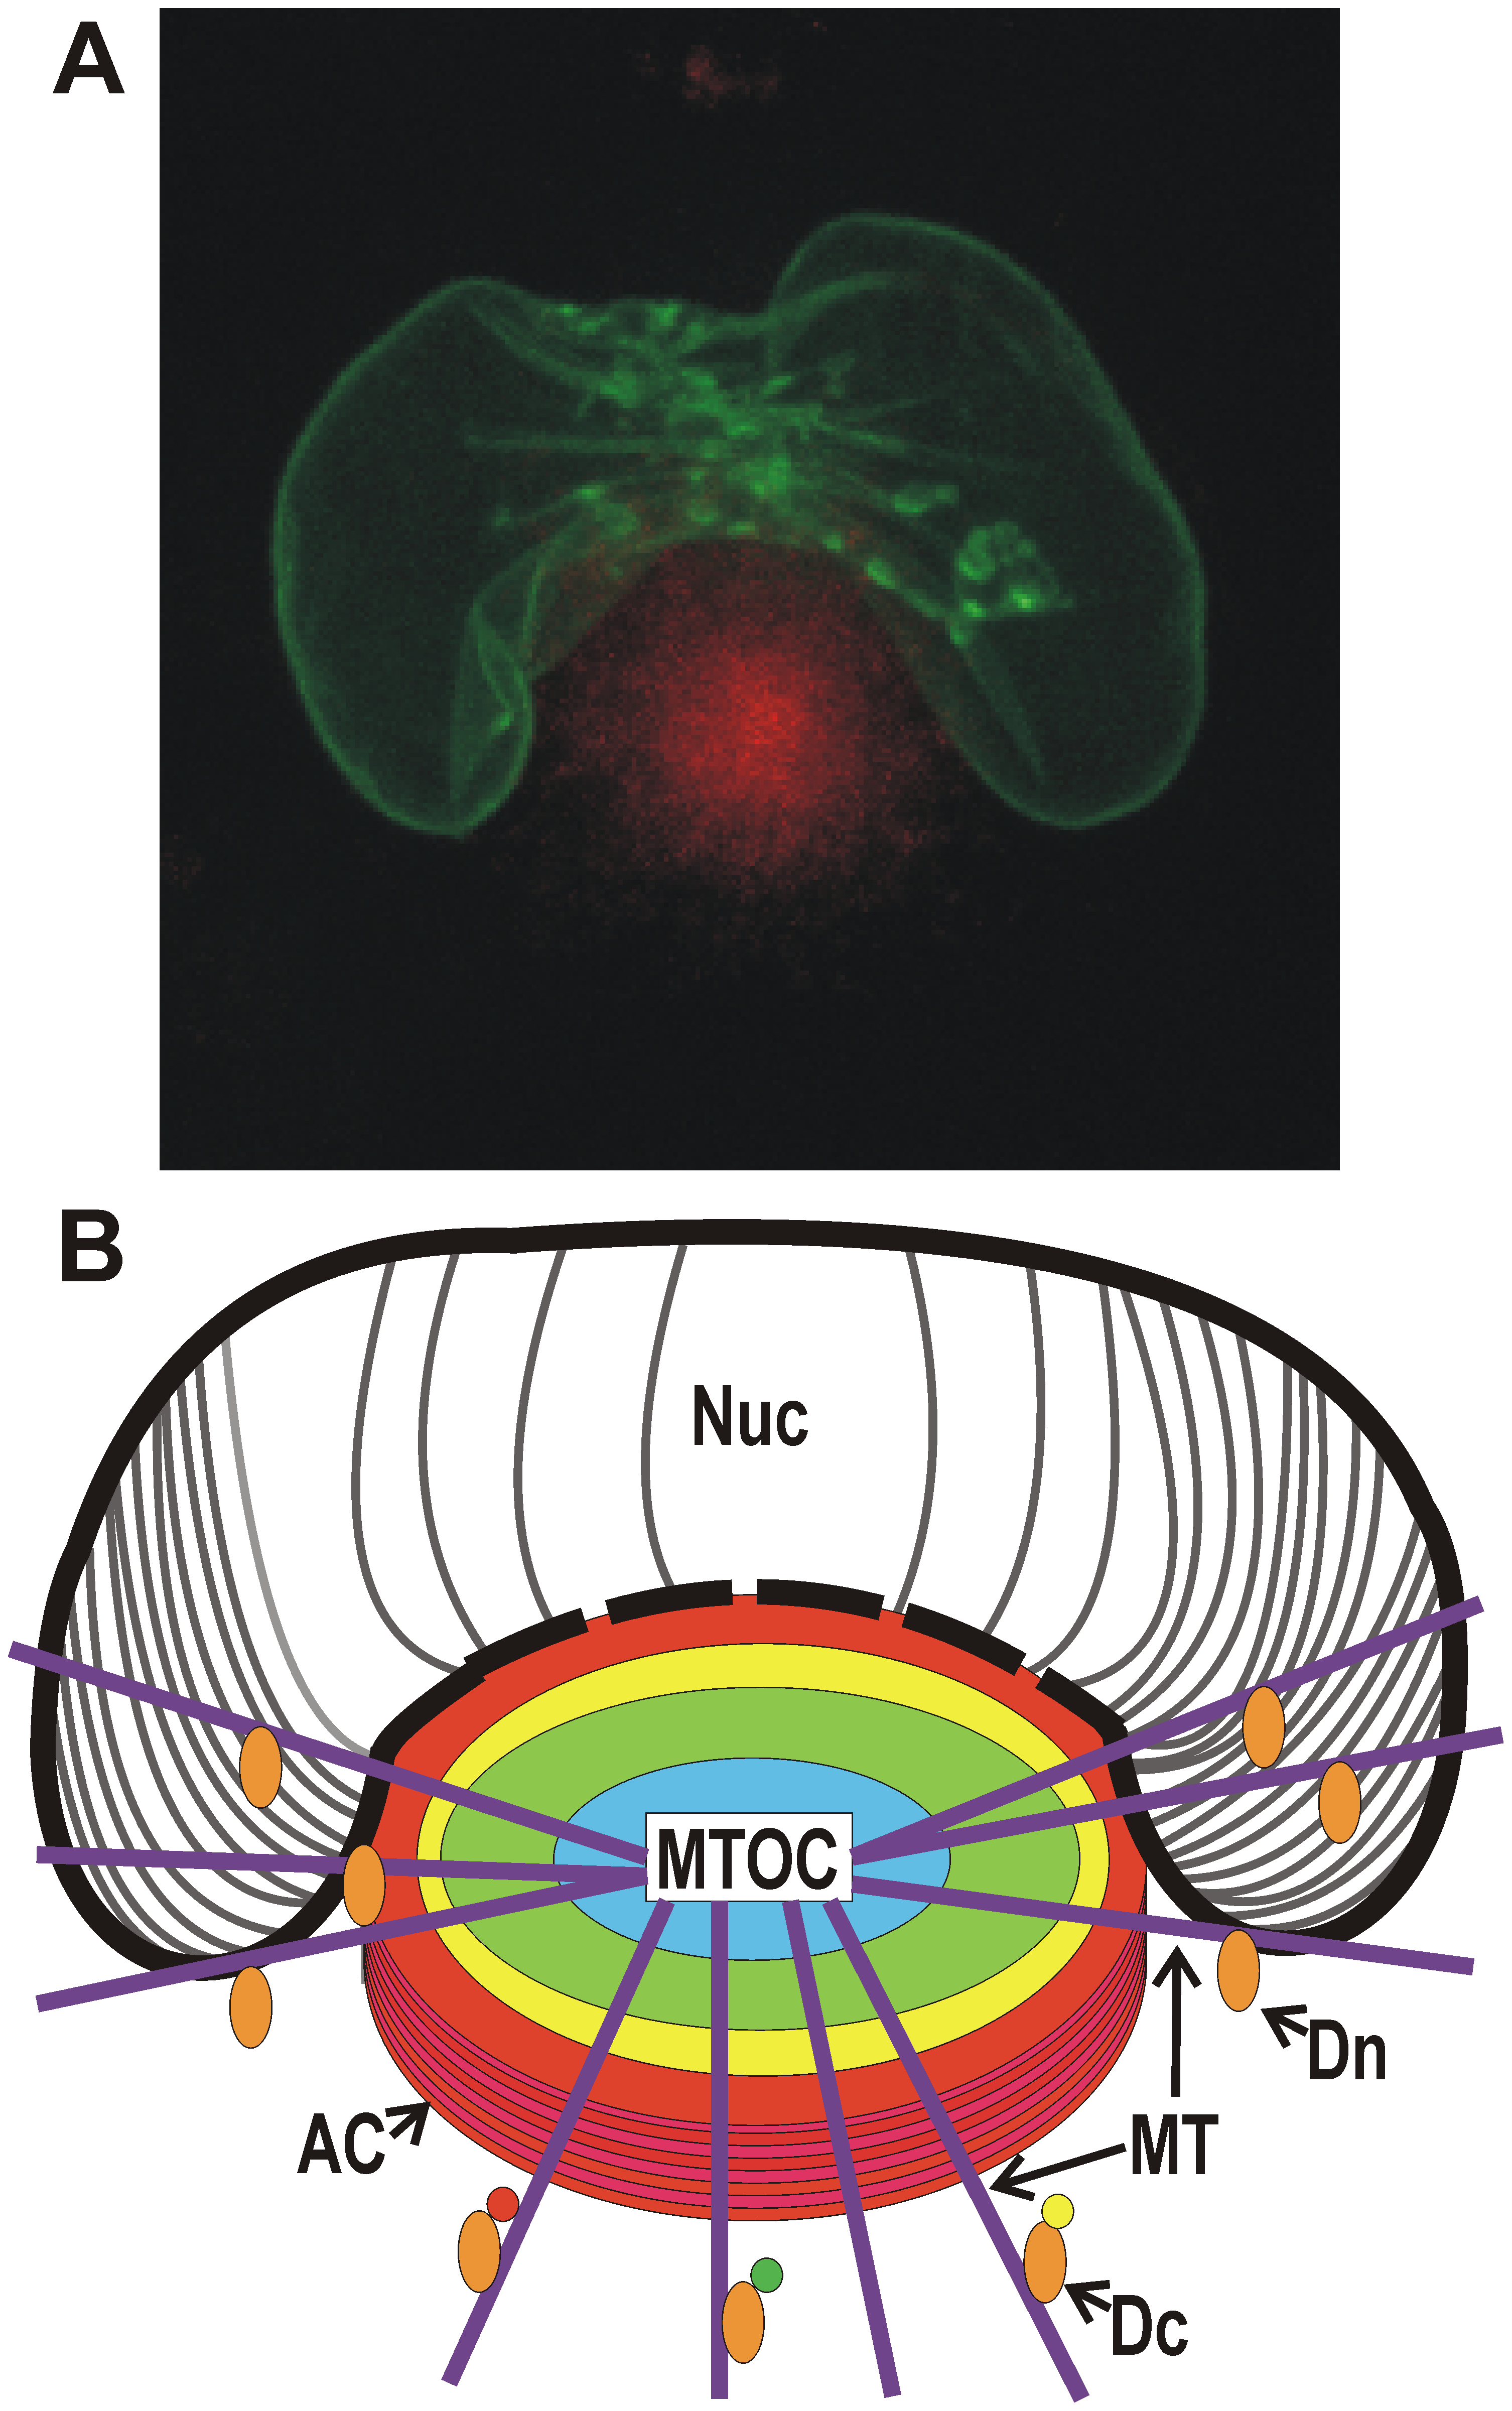 Microscopic and diagrammatic representations of the assembly compartment and nucleus in an HCMV-infected cell.